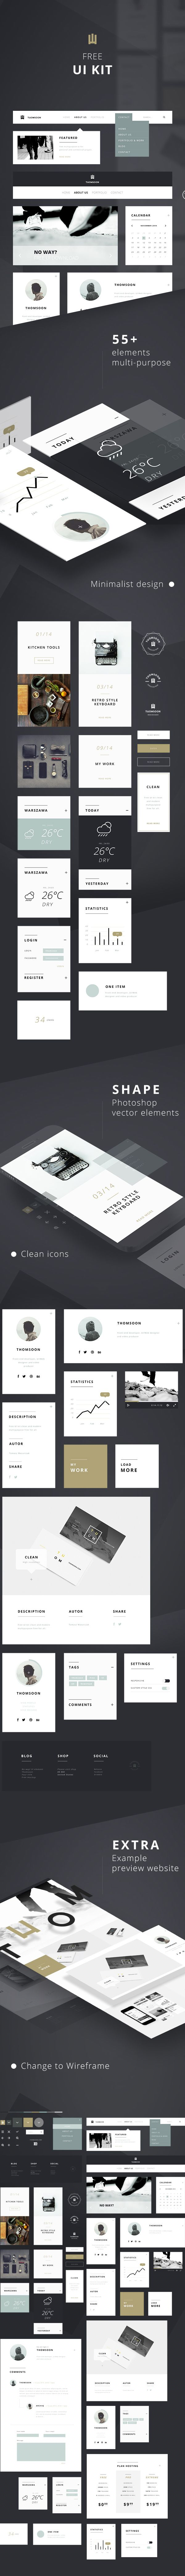 Free Download : Minimal UI Kit (55 elements)